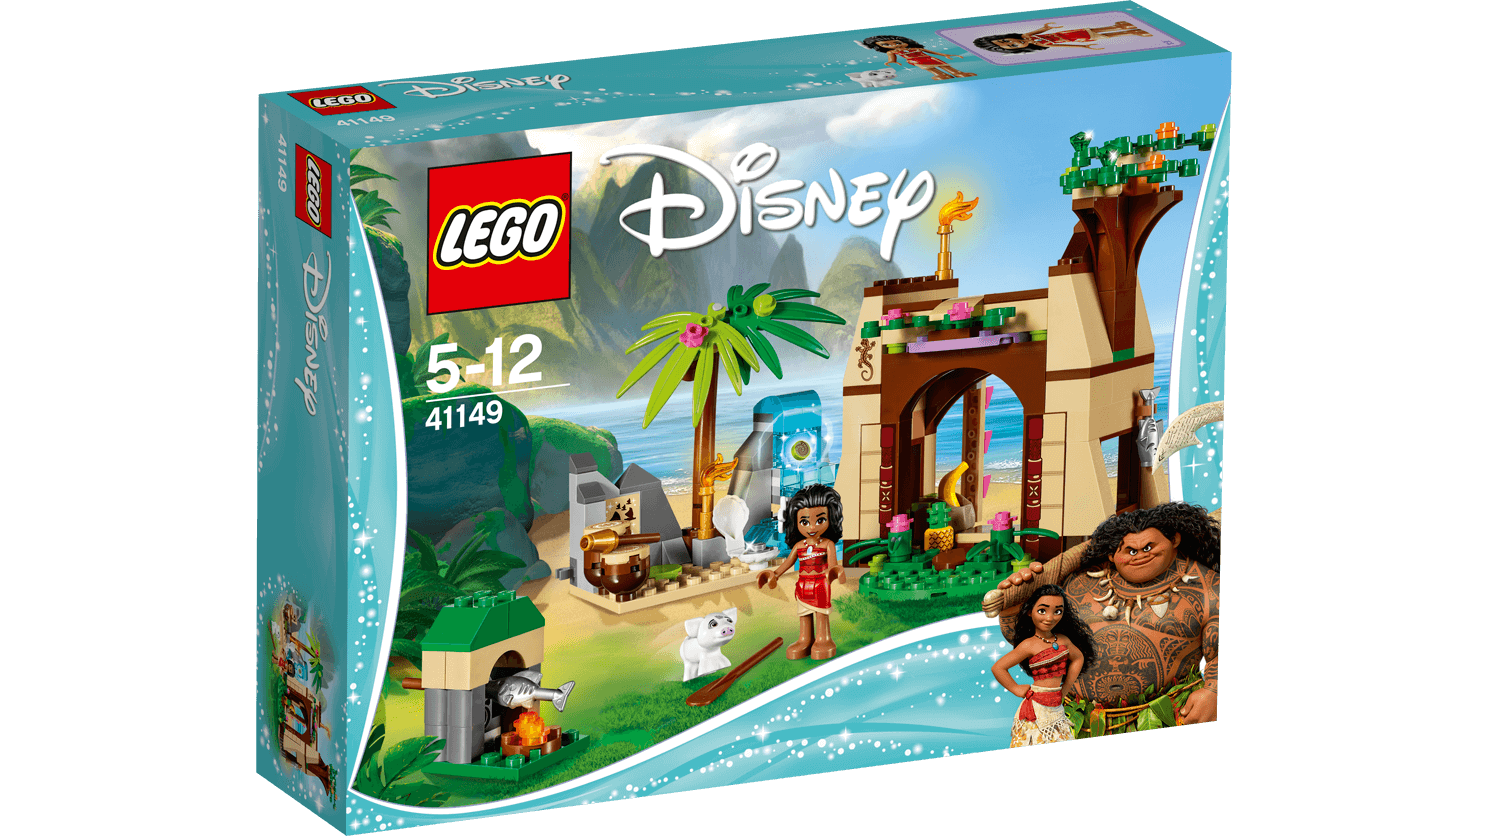 LEGO_41149_Box1_in_1488.png